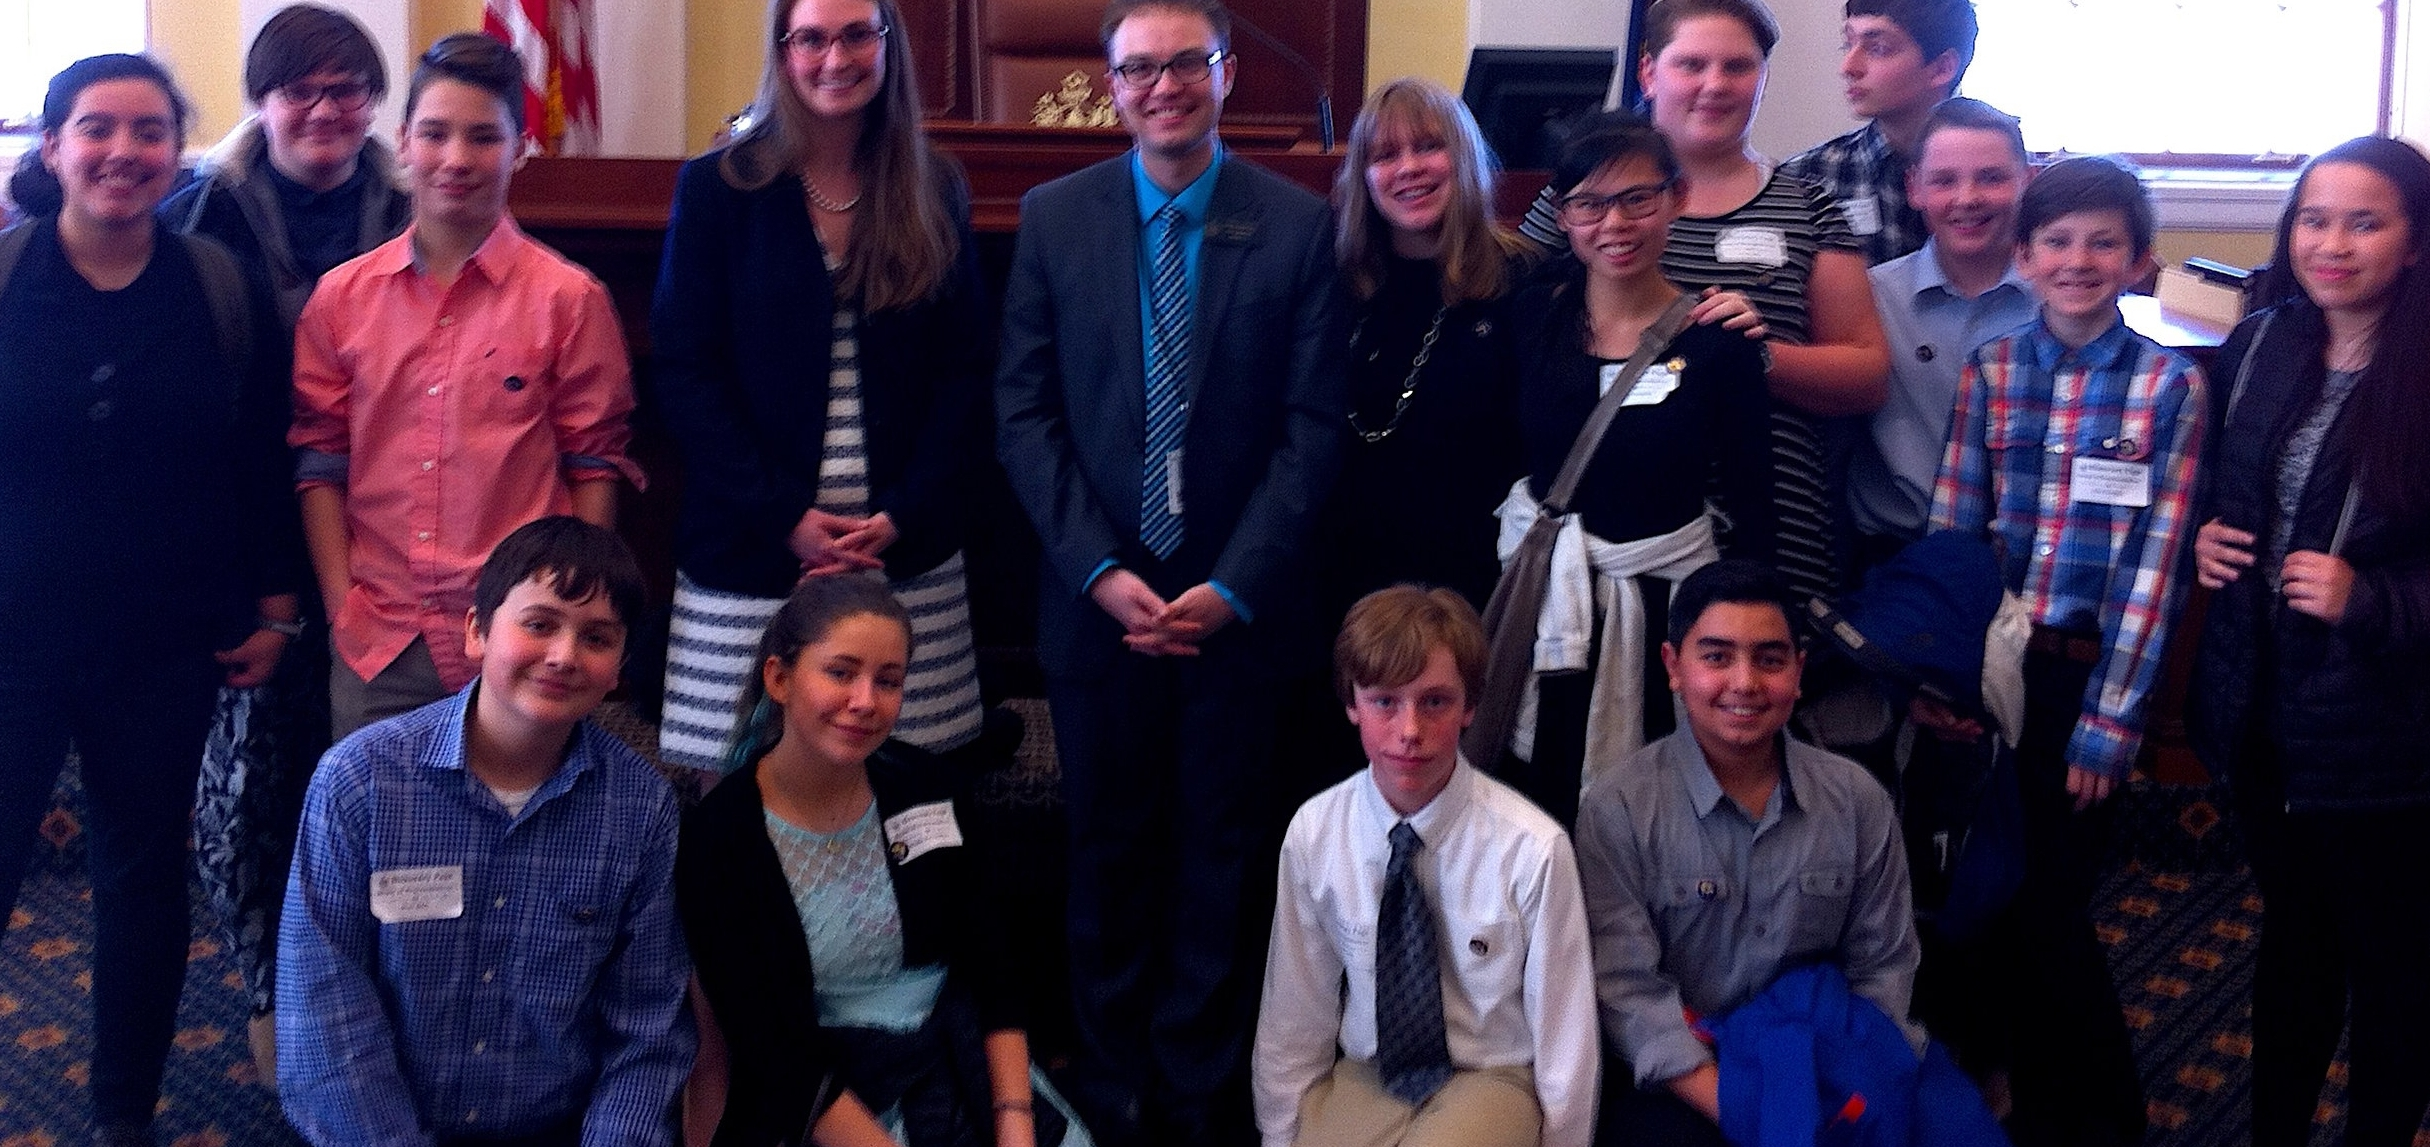 Breakwater students at the State House in Augusta, March 23, 2017.